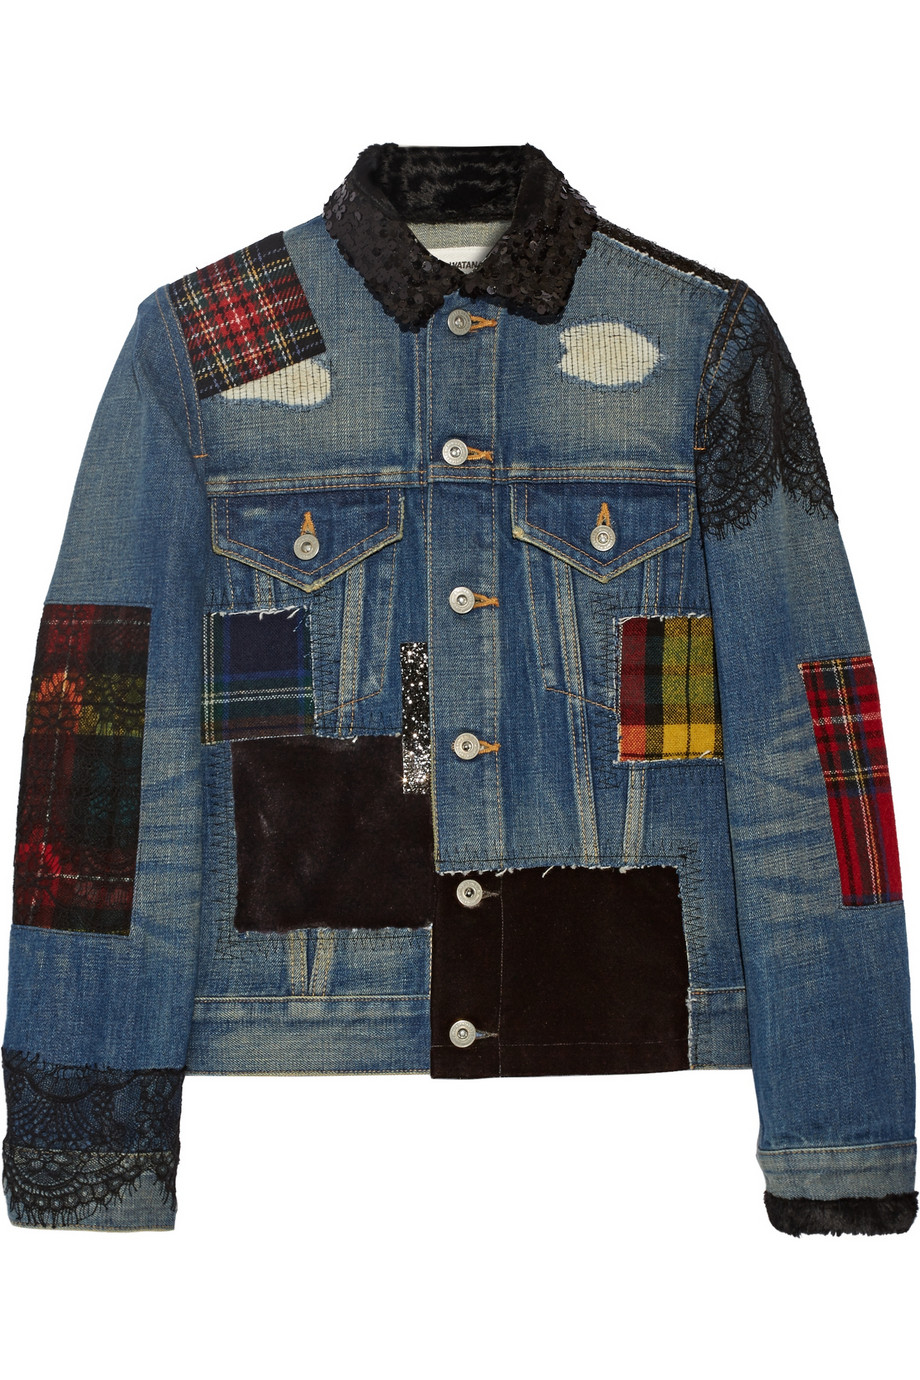 Junya Watanabe  denim jacket - was $1,290, now $903